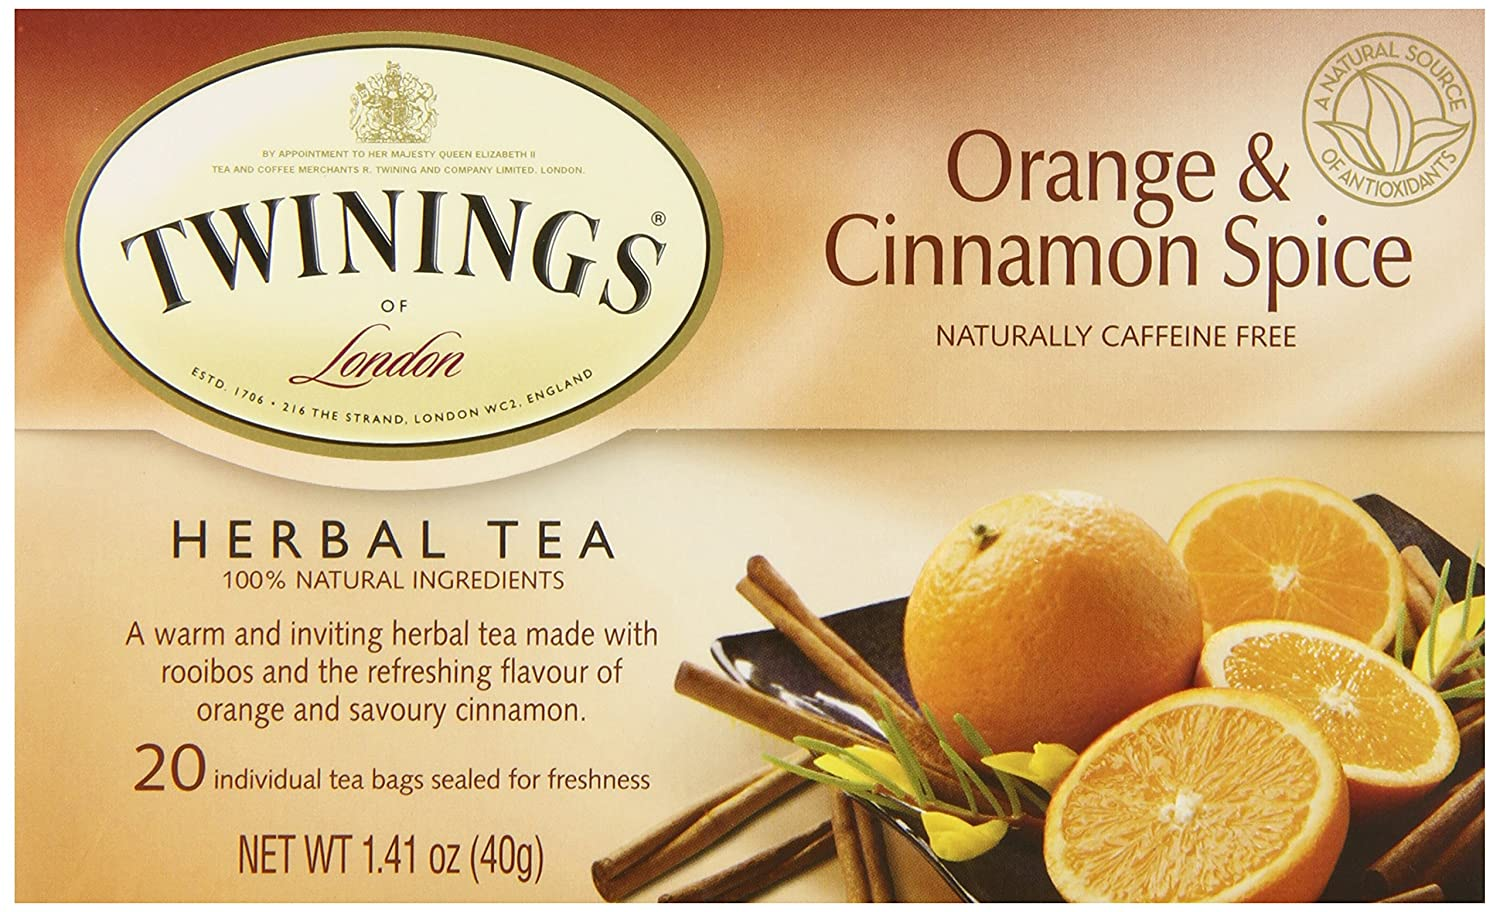 Twinings Orange & Cinnamon Spice Tea